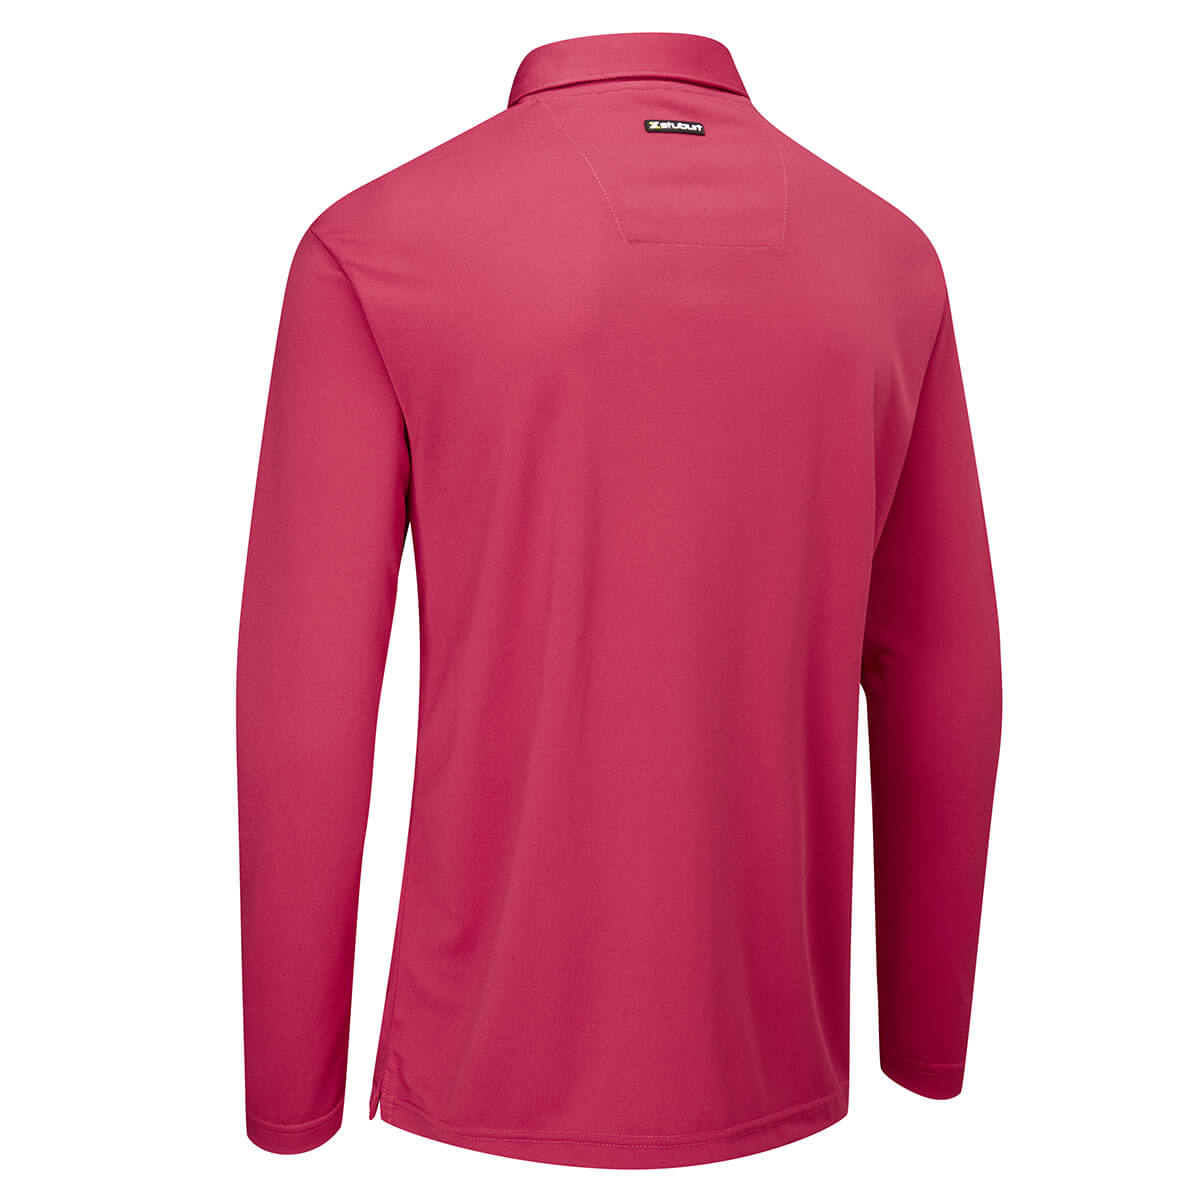 Stuburt-Mens-Urban-Long-Sleeve-Wicking-Breathable-Golf-Polo-Shirt-33-OFF-RRP thumbnail 3